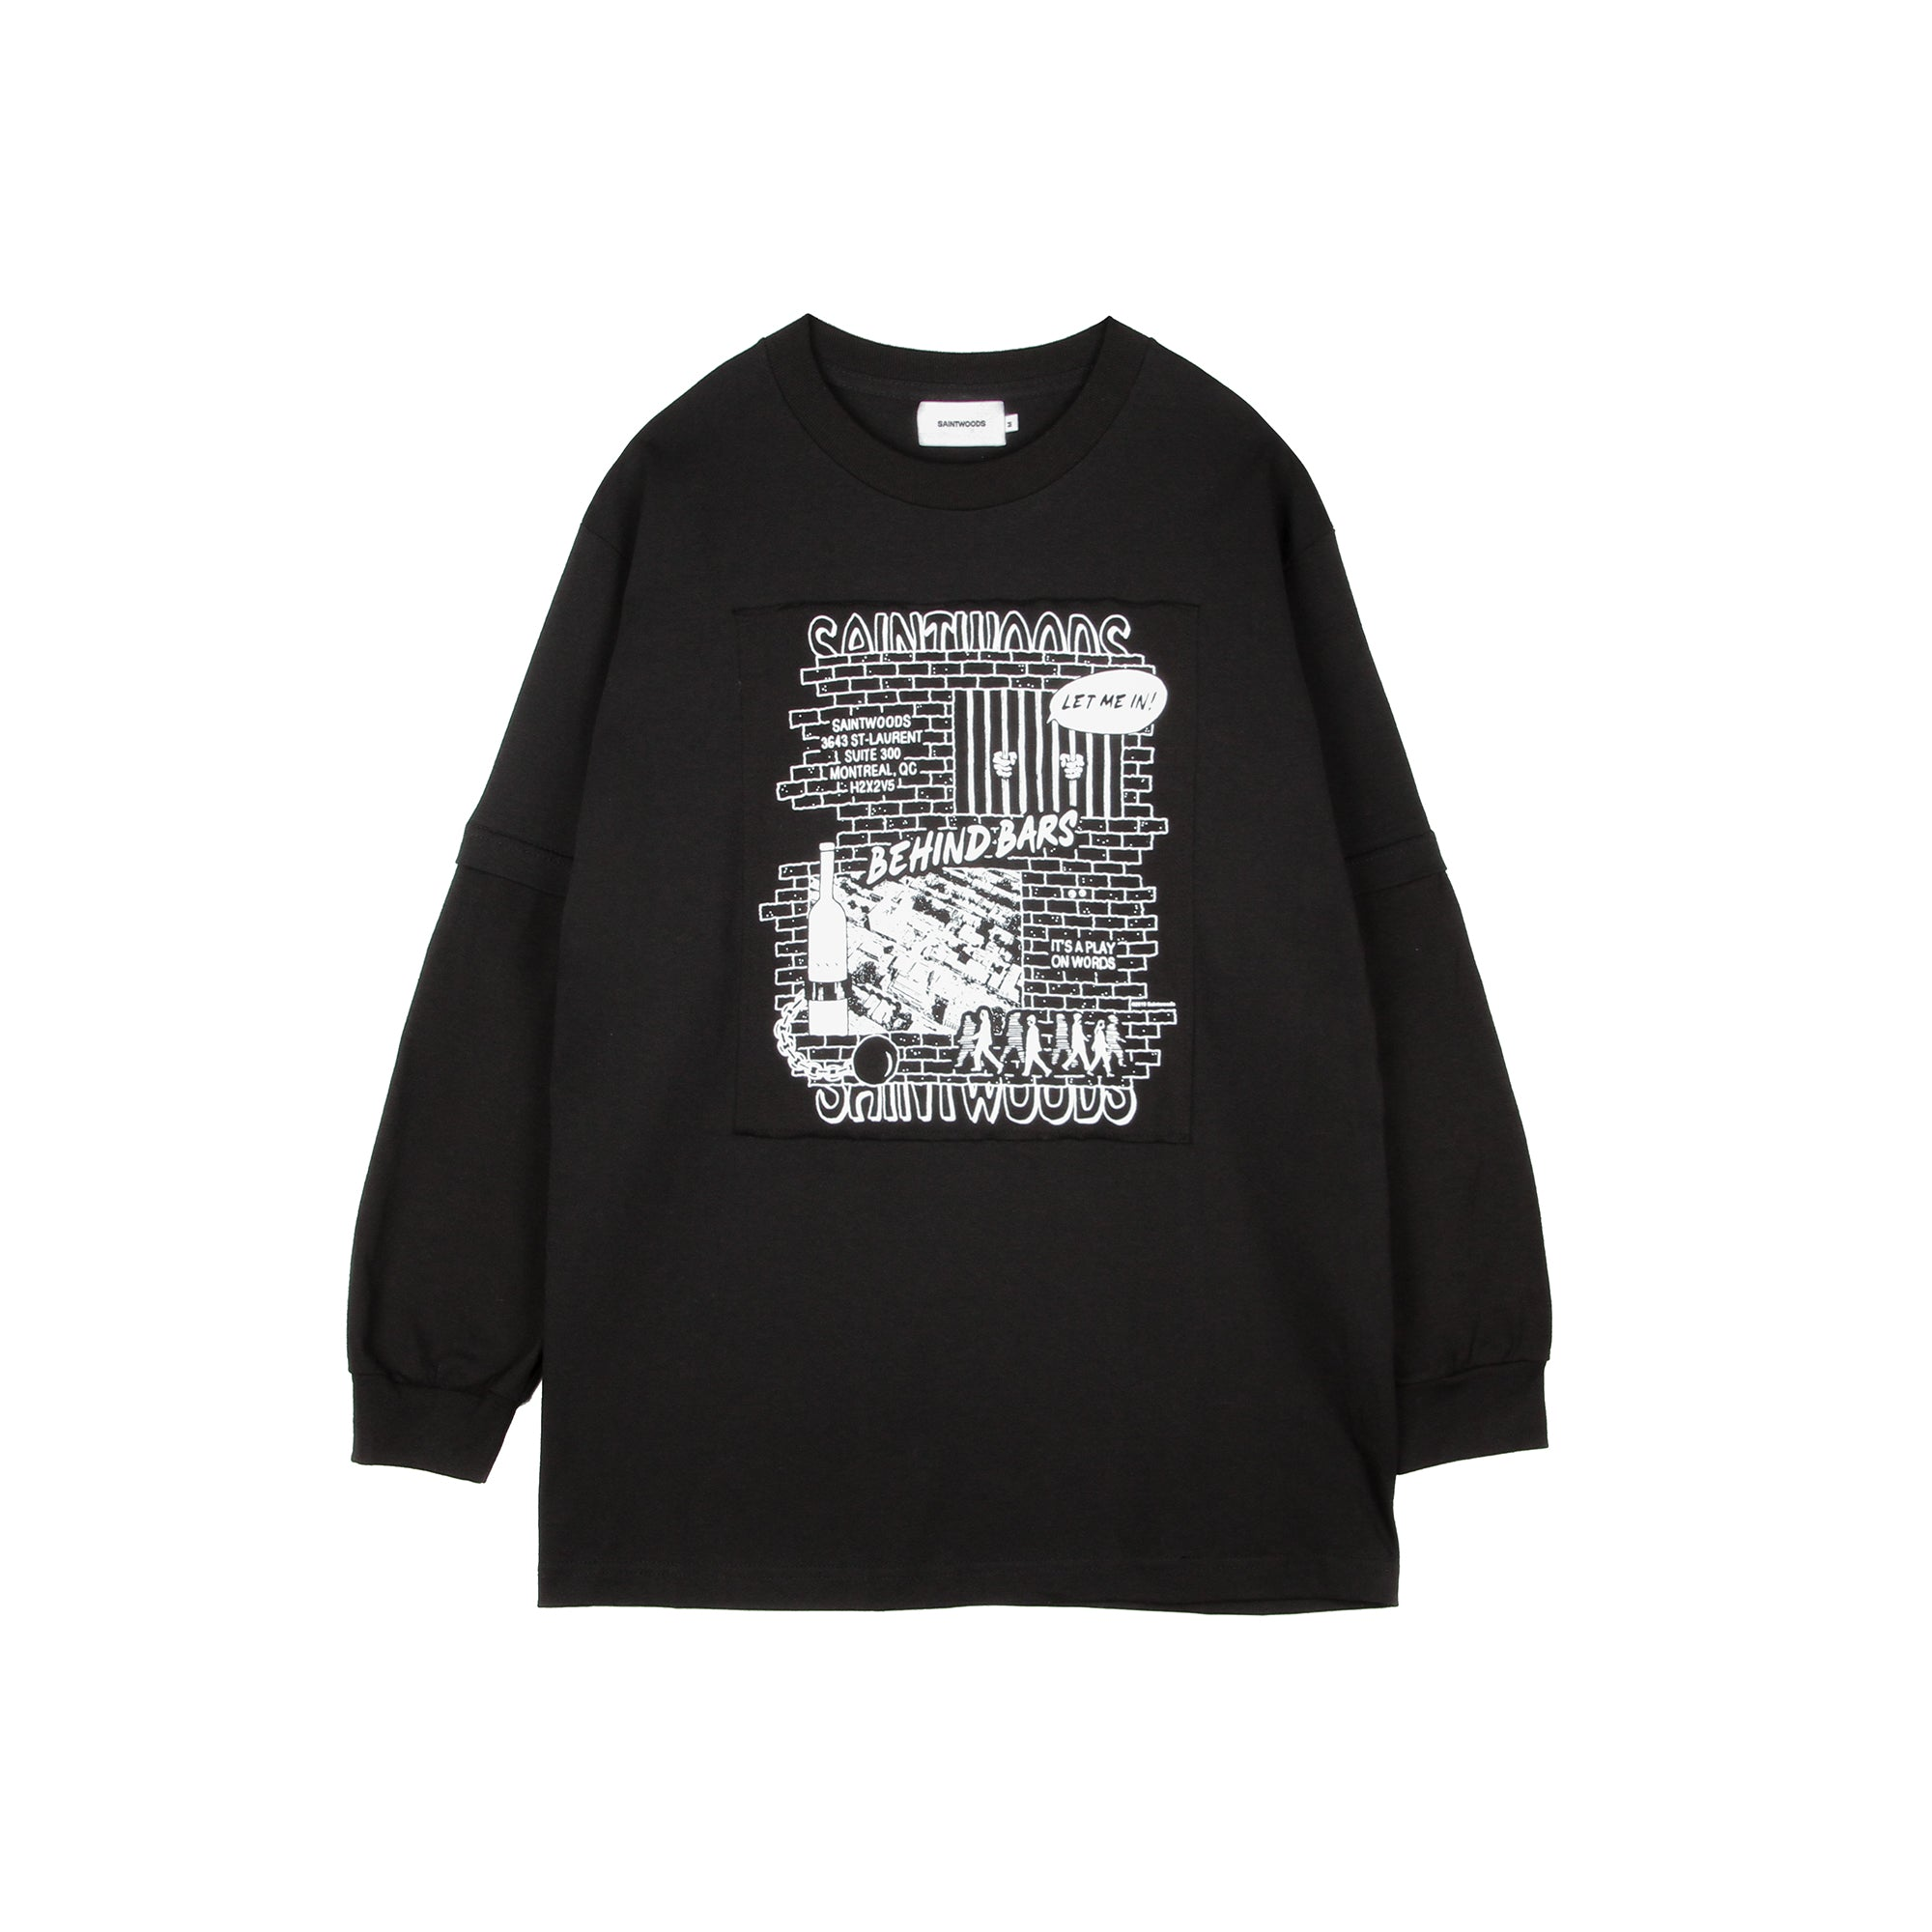 Behind Bars Longsleeve - Long Sleeves - Saintwoods